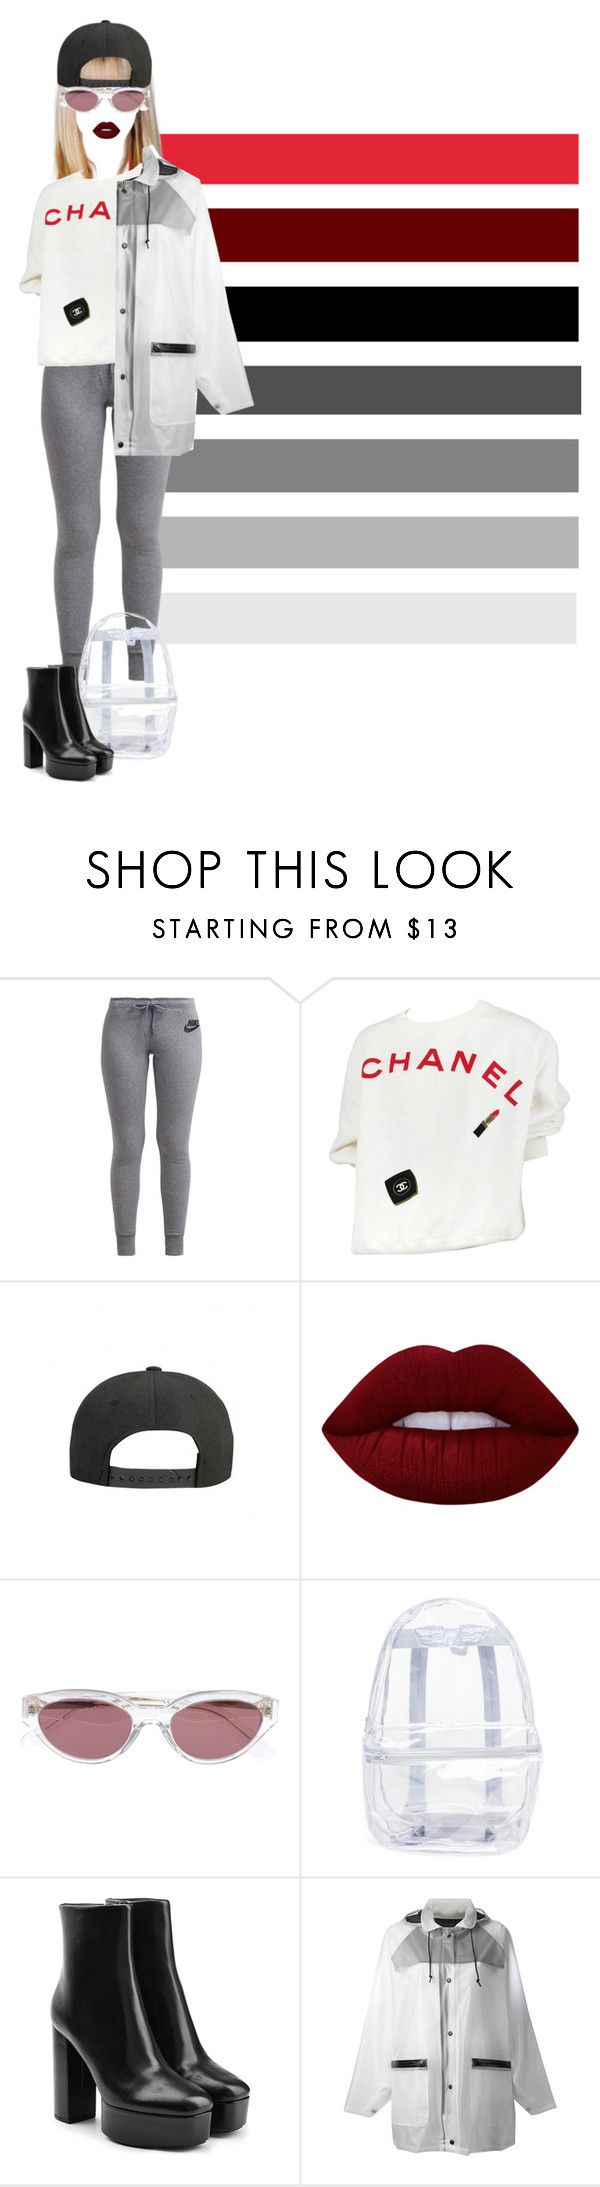 """""""mannequinxo x Futuristic Mami // Perrie Edwards"""" by xoflawlessmannequinxo ❤ liked on Polyvore featuring NIKE, Chanel, Lime Crime, RetroSuperFuture, Topshop, Alexander Wang and DKNY"""